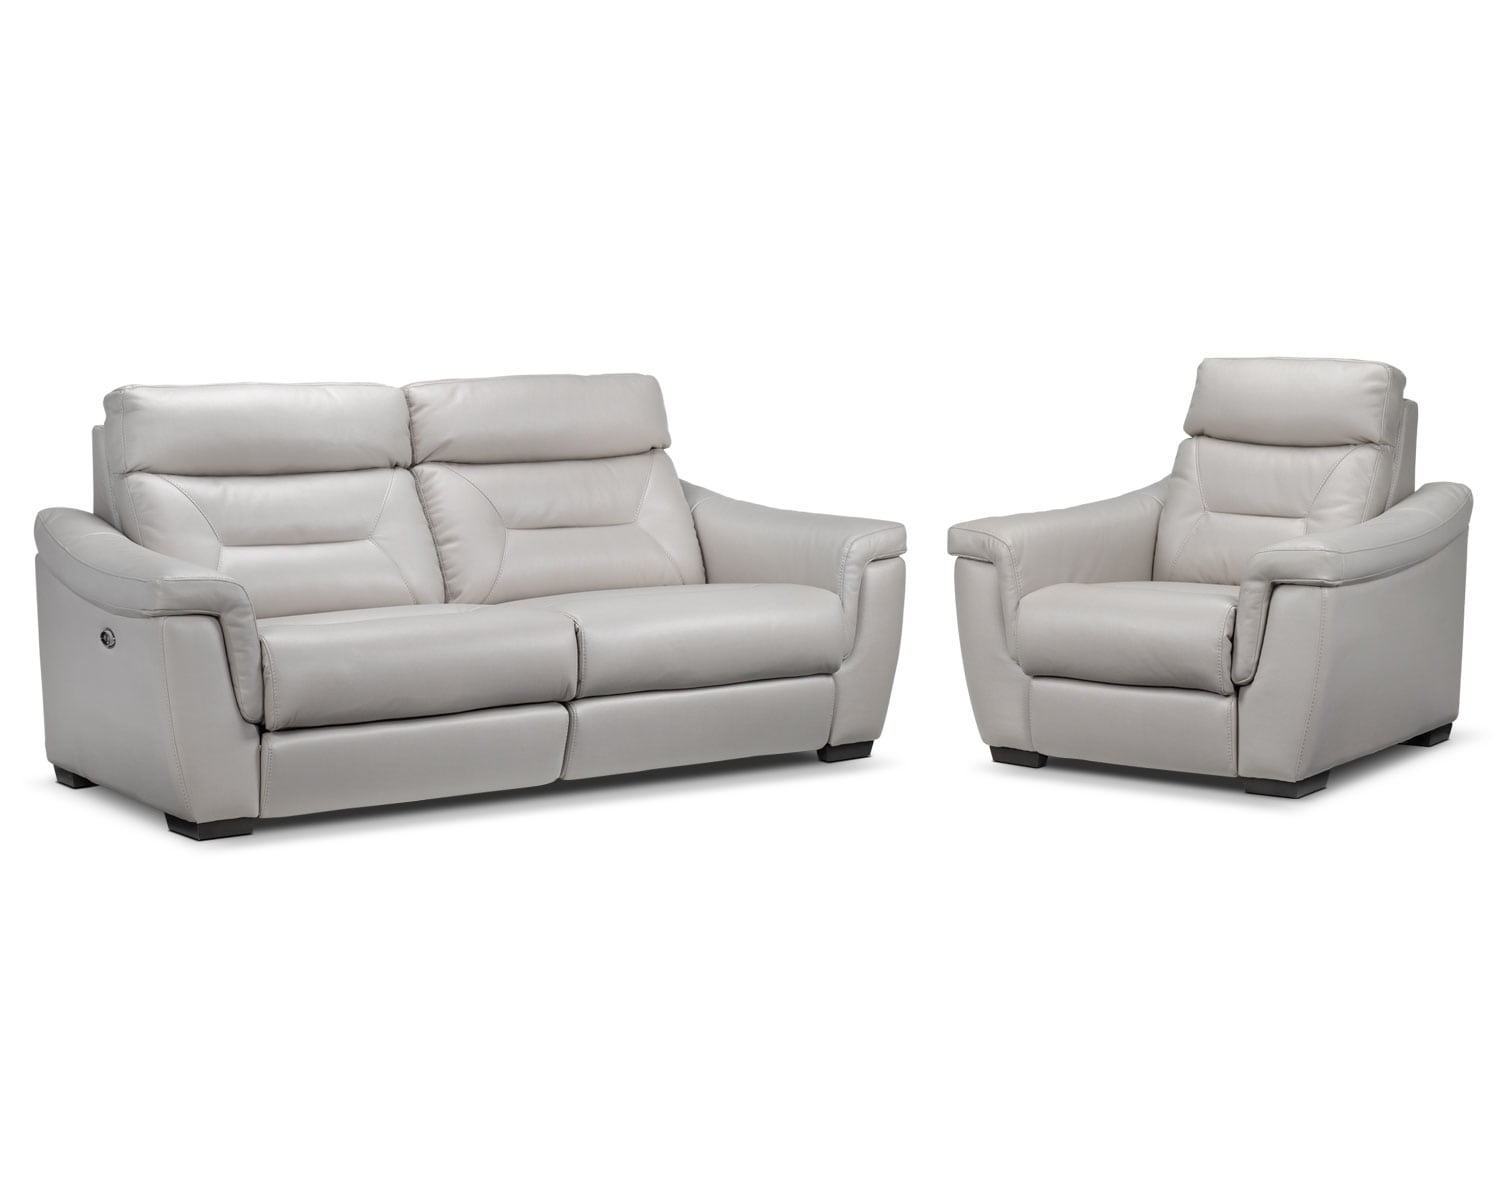 Ralston Power Reclining Sofa and Power Recliner Set- Silver-Grey